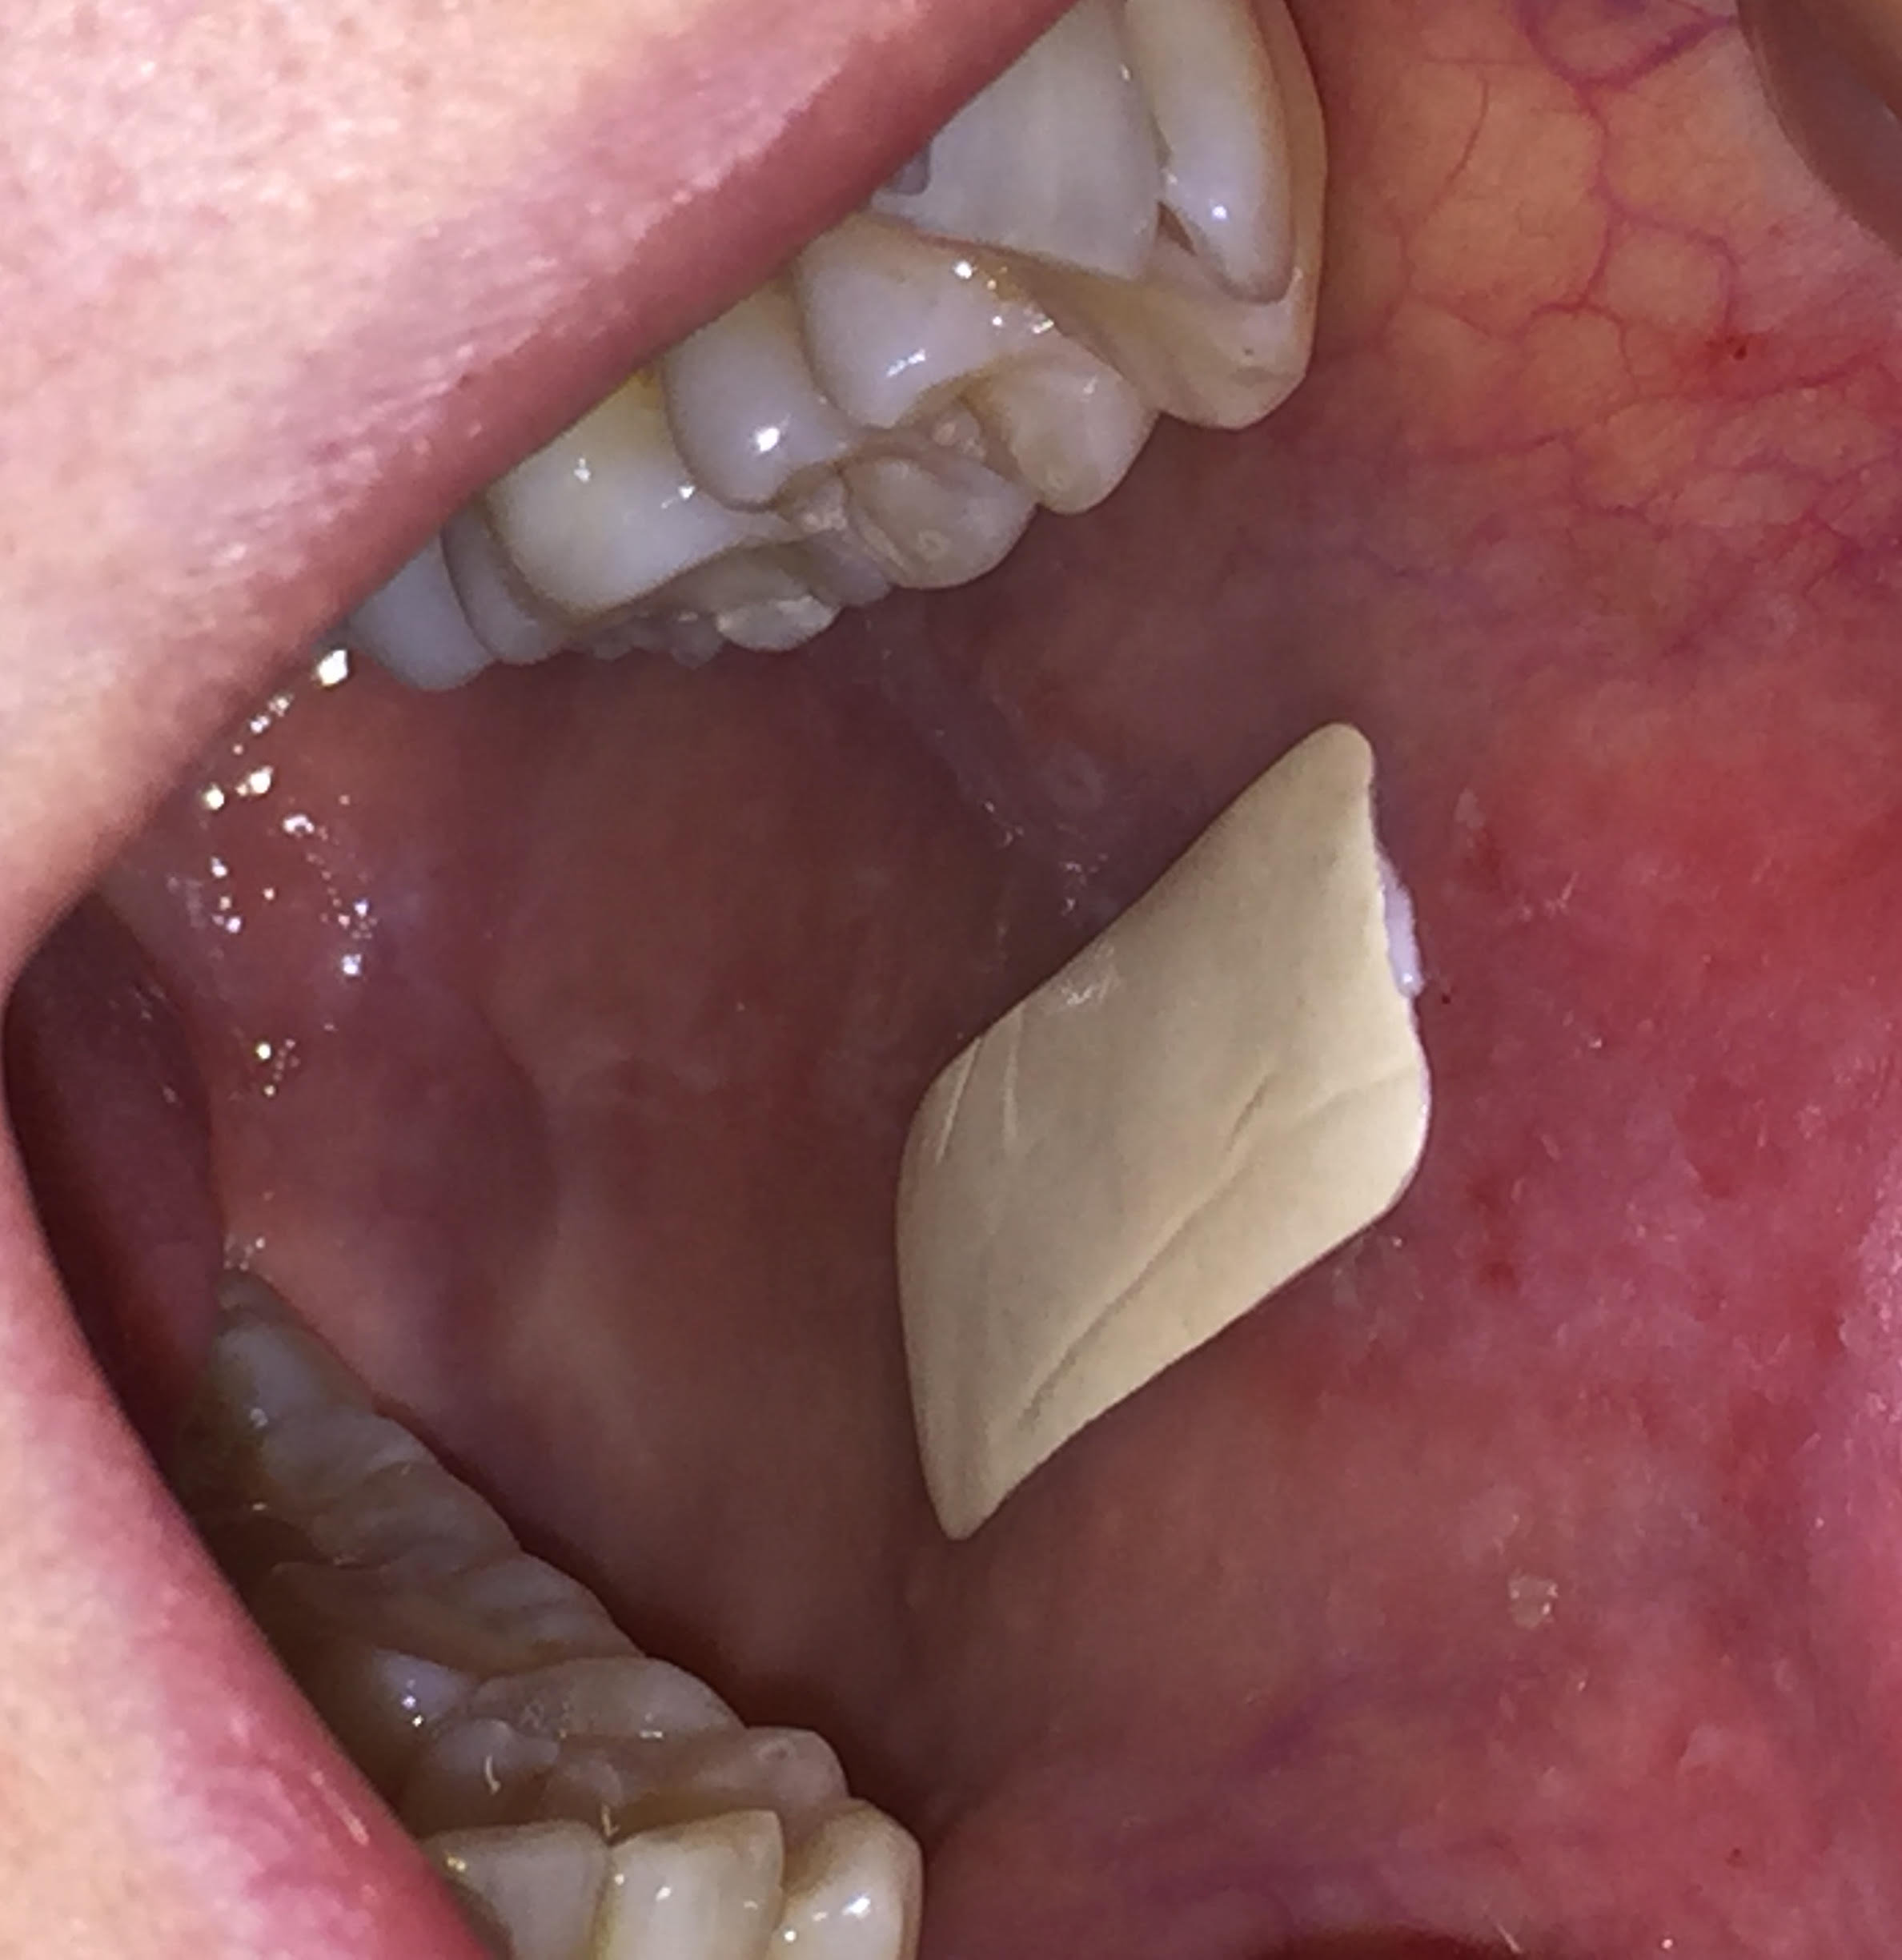 Plaster which sticks inside the mouth could improve treatment of oral conditions